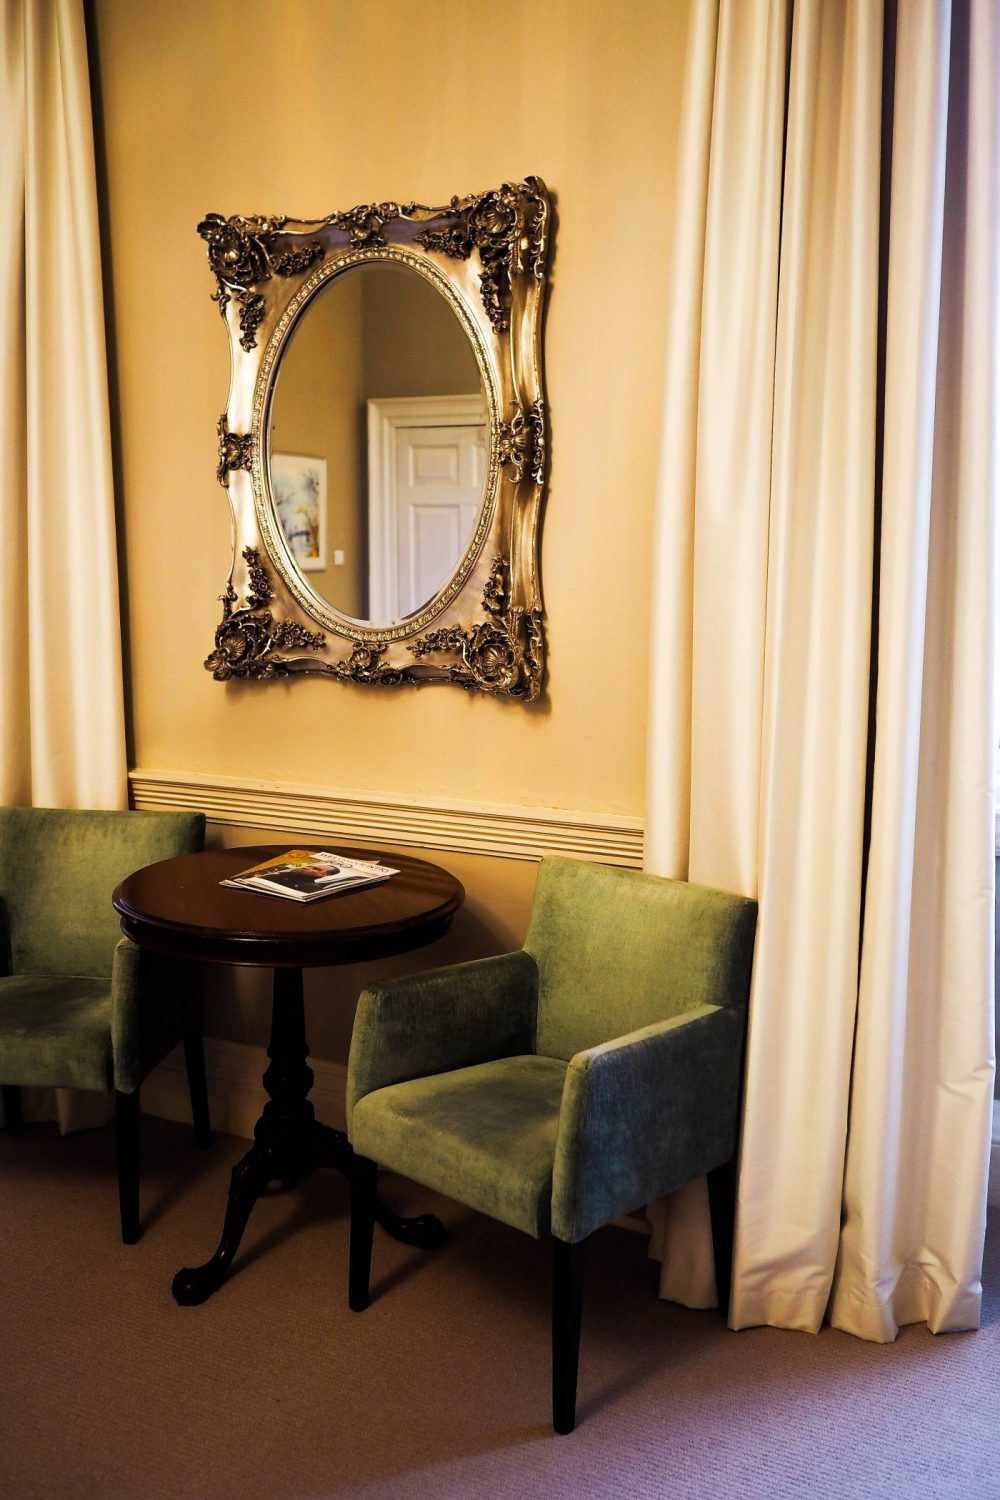 Two chairs and a table in the Nightingale suite at Nanteos Mansion